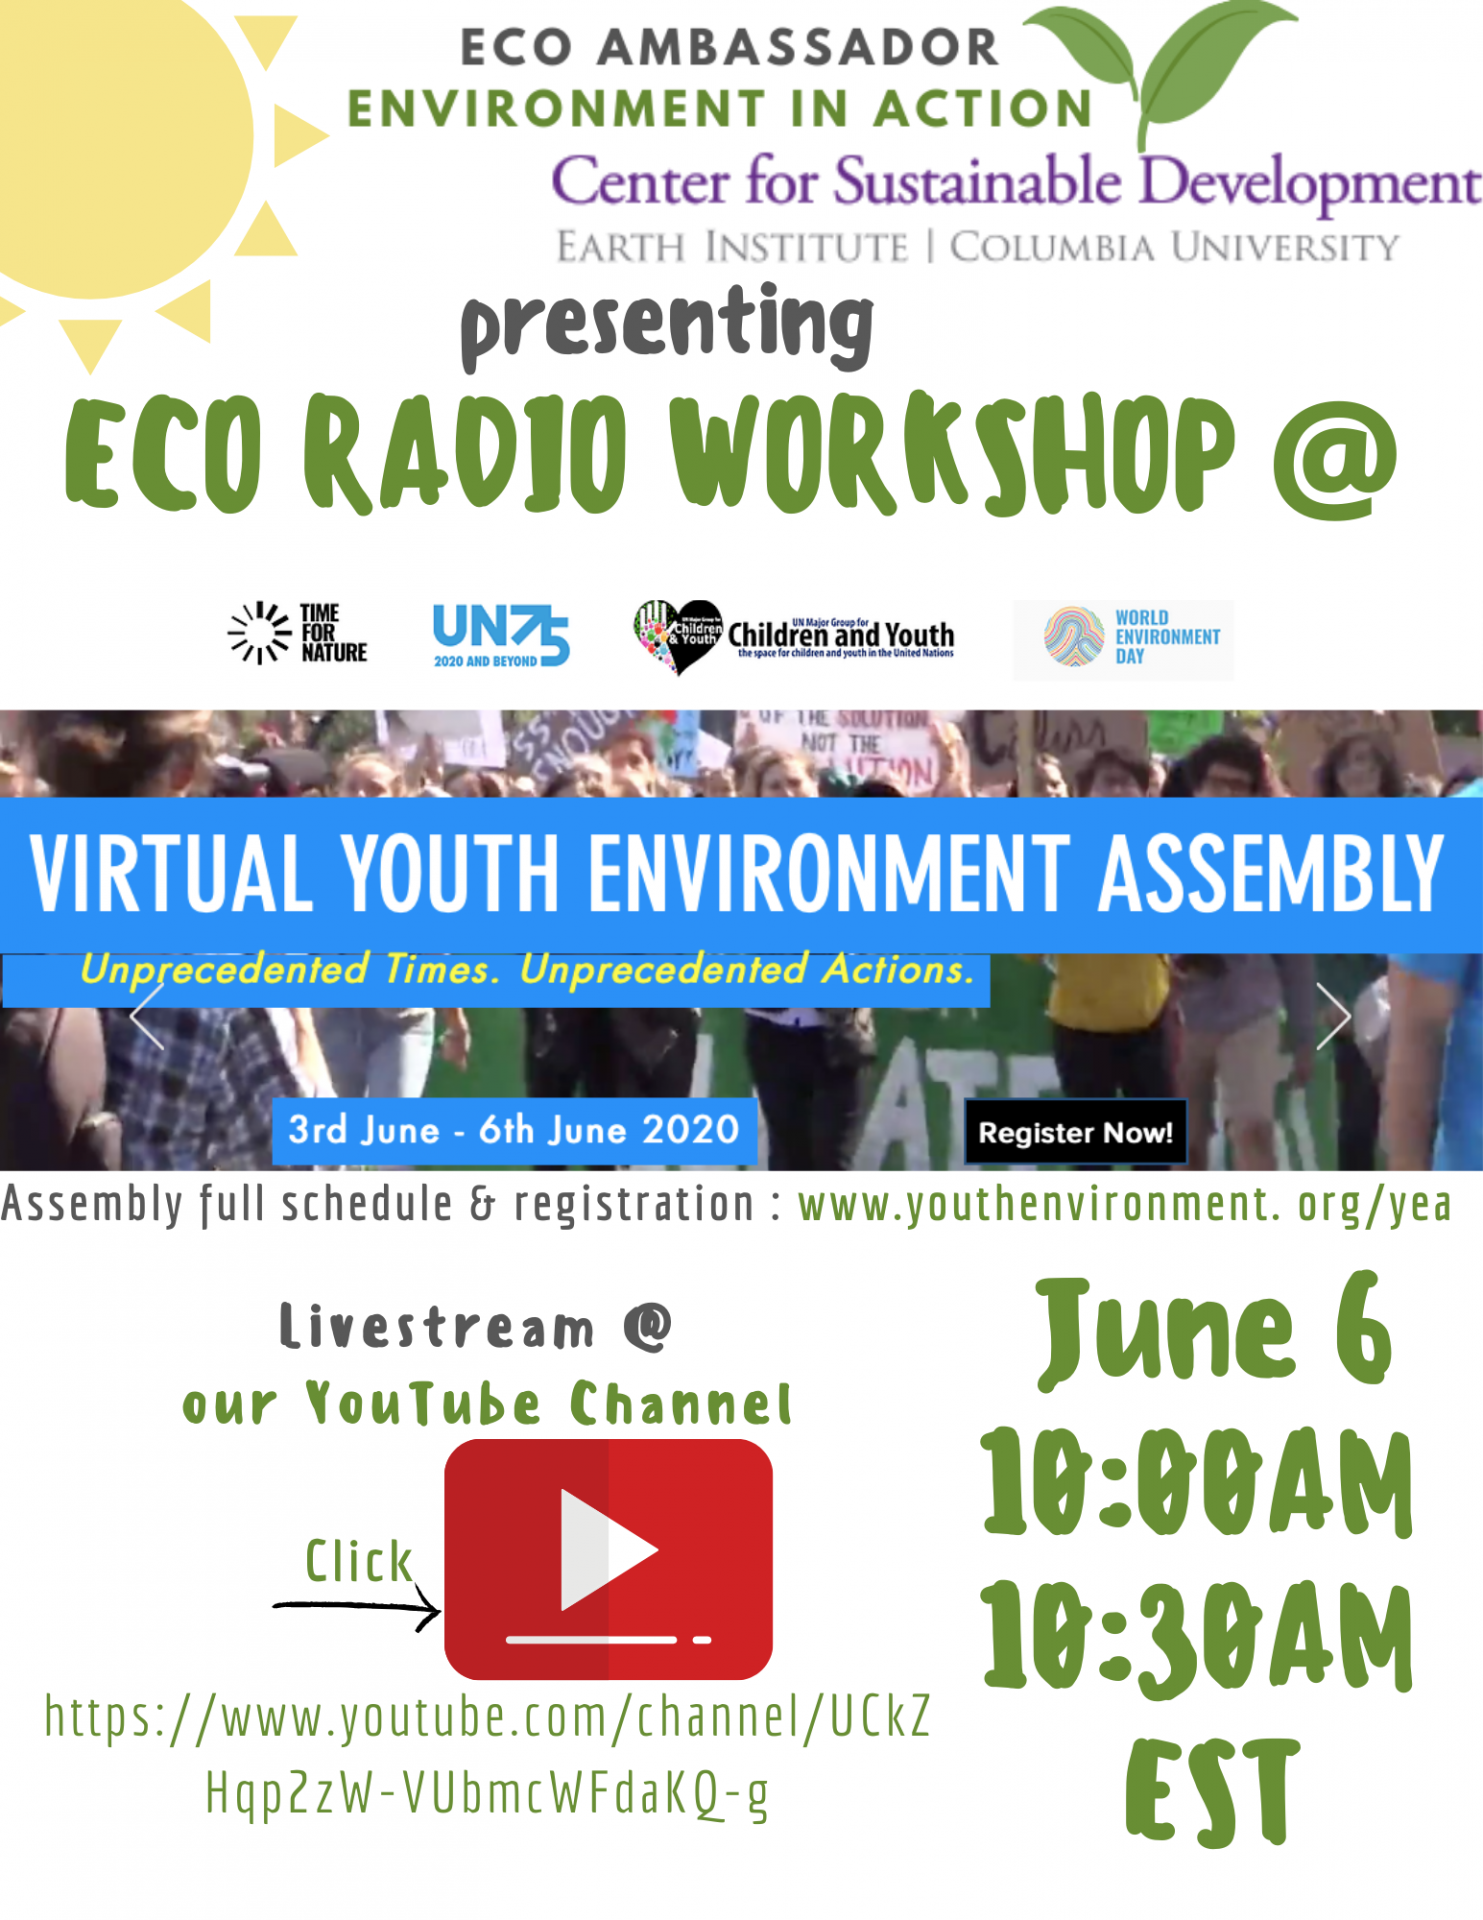 Eco-ambassador presents Eco-Radio Workshop